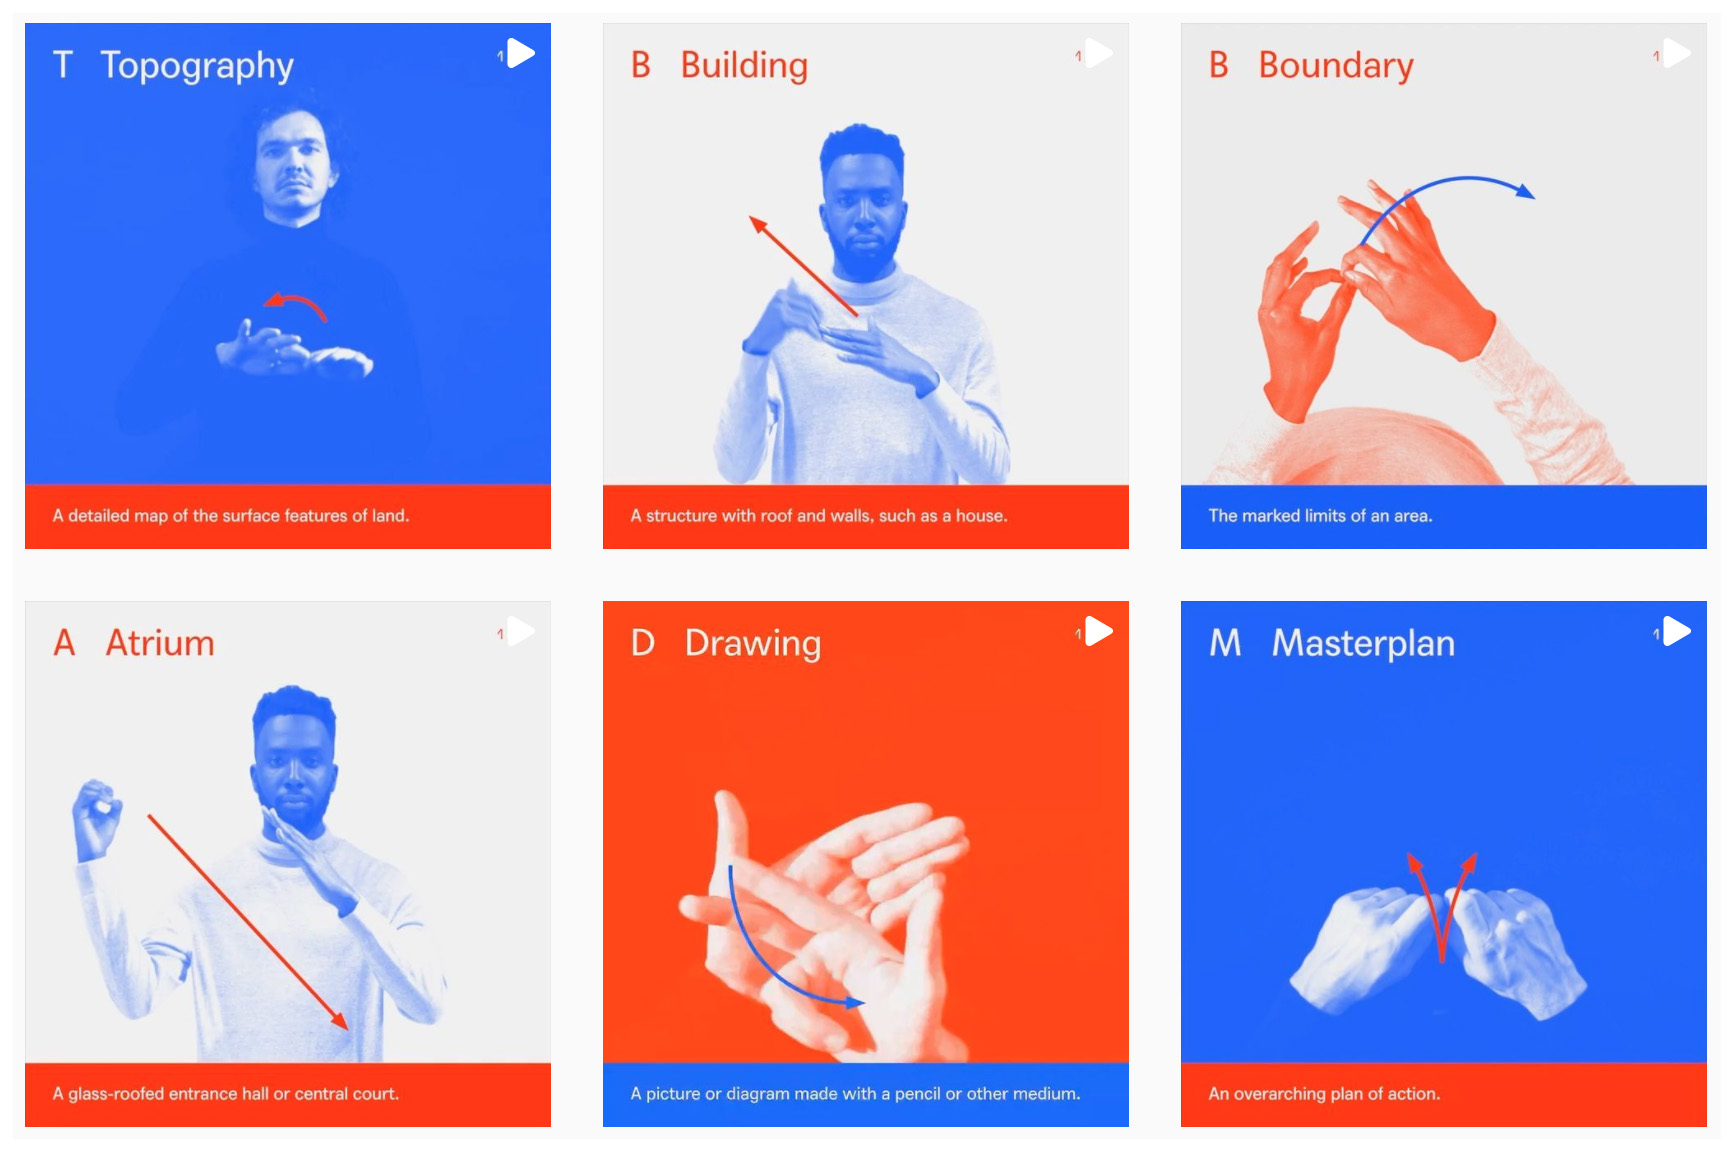 Series of blue, red and white images demonstrating hand signs for various architectural words